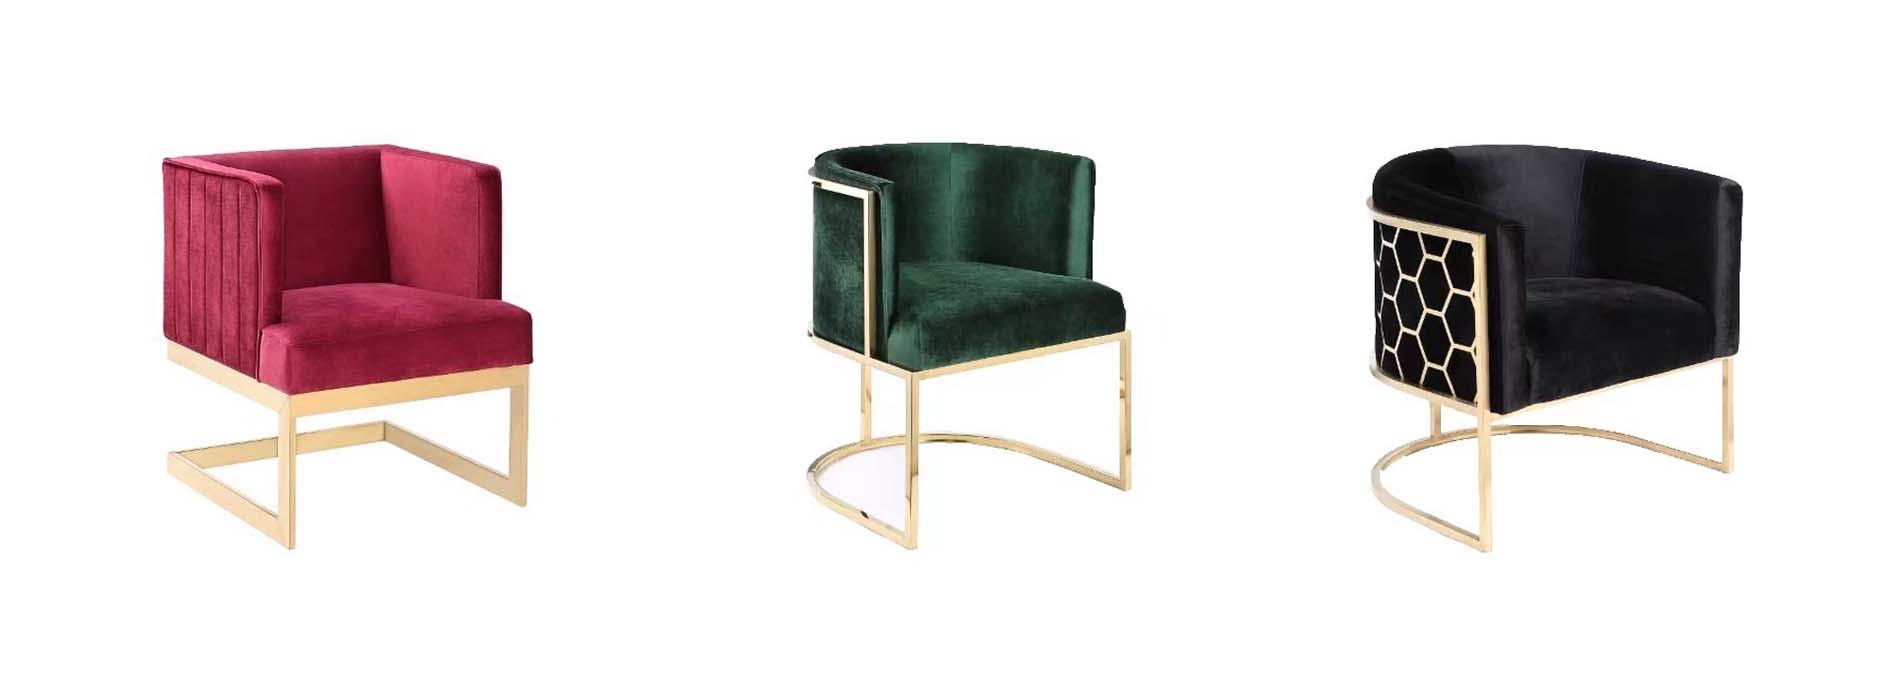 Accent_chairs_20.07